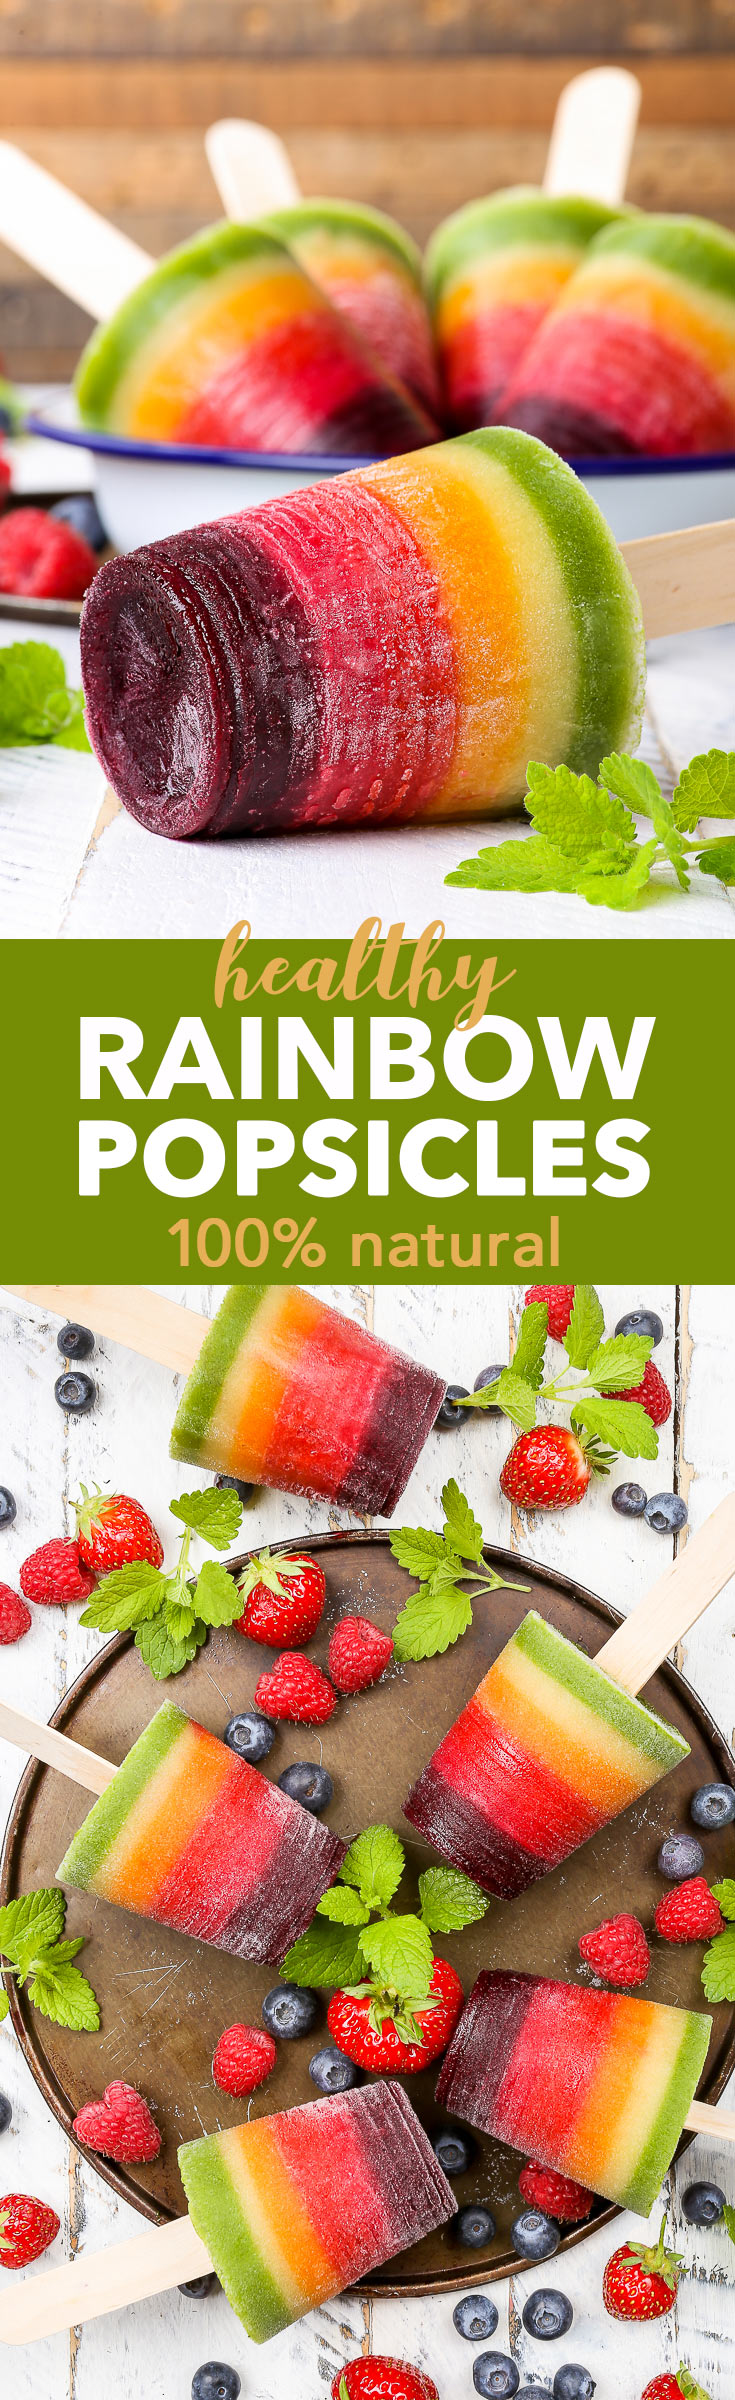 Healthy 100% Natural Rainbow Fruit Popsicles {gluten, dairy, egg, nut, soy & refined sugar free, vegan & paleo} - These healthy rainbow fruit popsicles are 100% natural, made with no artificial dyes or food colourings. Just wholesome, plant-based ingredients. They are gluten, dairy and refined sugar free, as well as vegan and paleo. But most importantly, these fruit popsicles are absolutely delicious – the perfect refreshing summer ice cream treat.